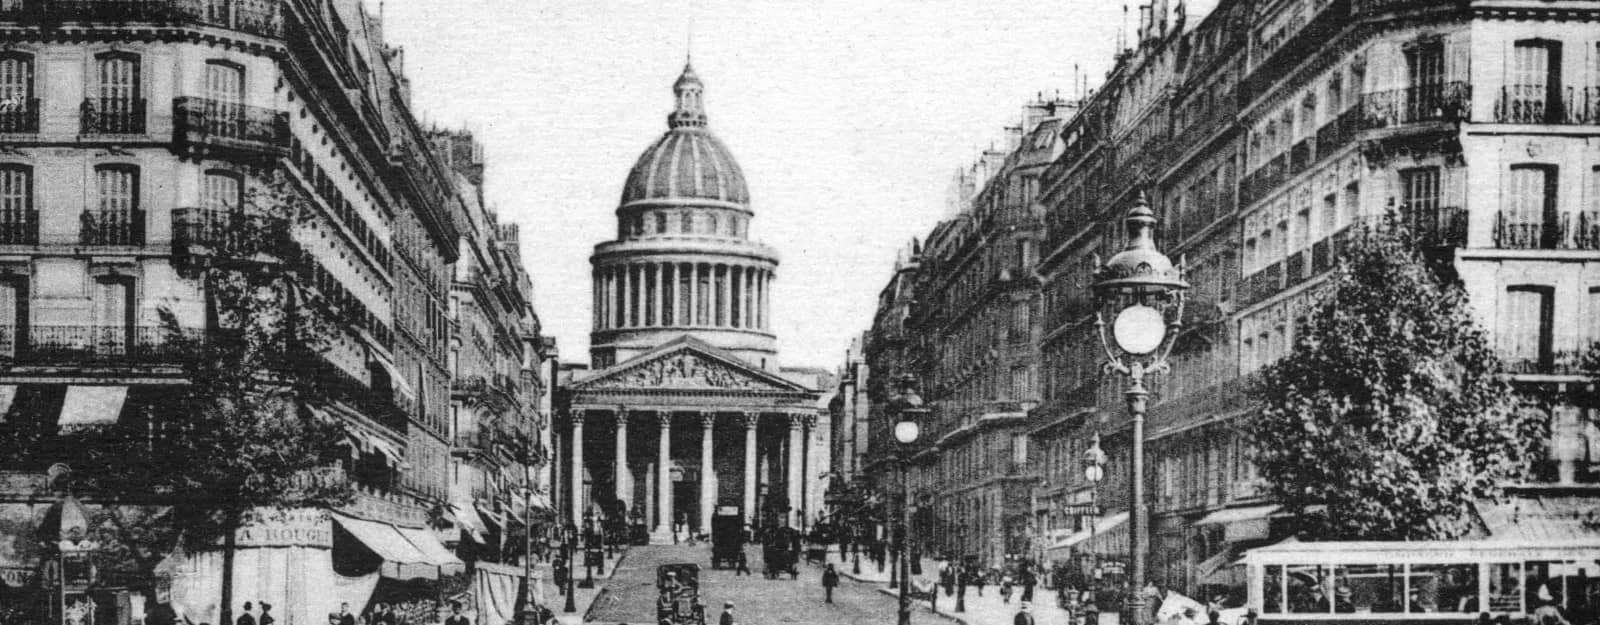 Pantheon Paris historical photo